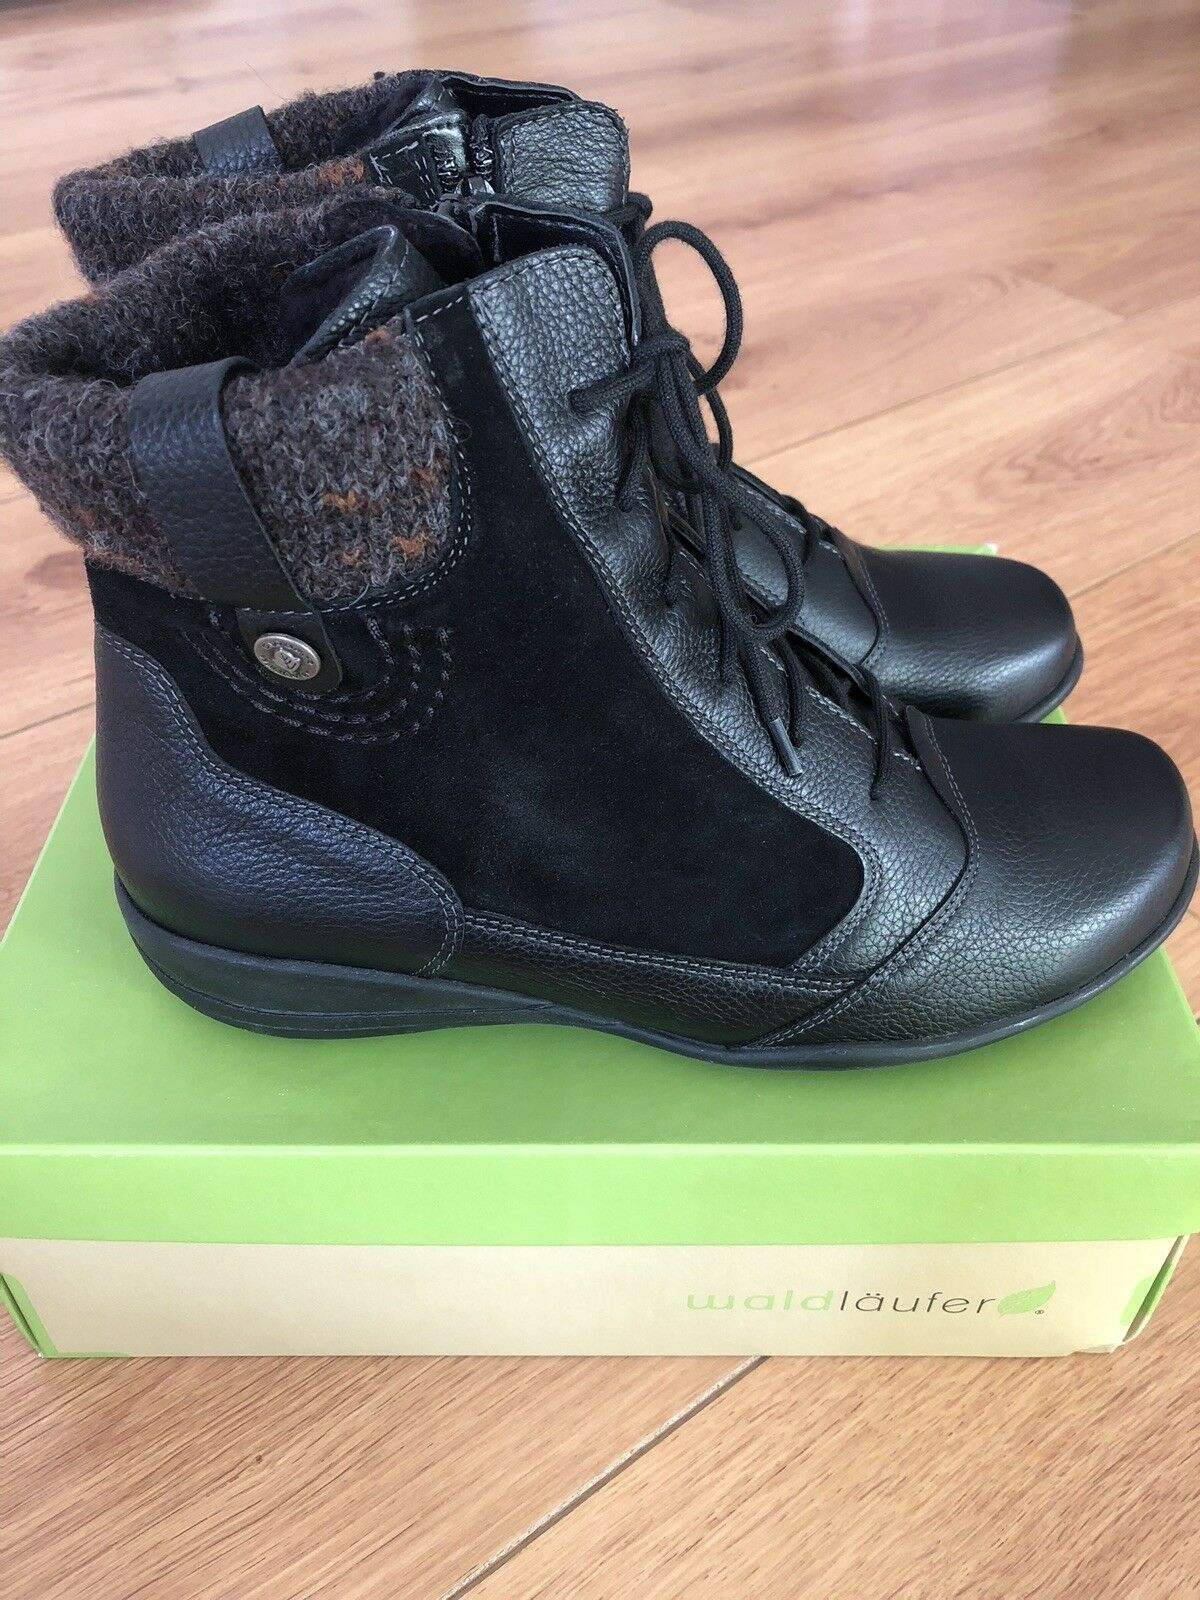 BRAND NEW WALDLAUFER ladies zip lace wool lined ankle boots-black leather UK 4